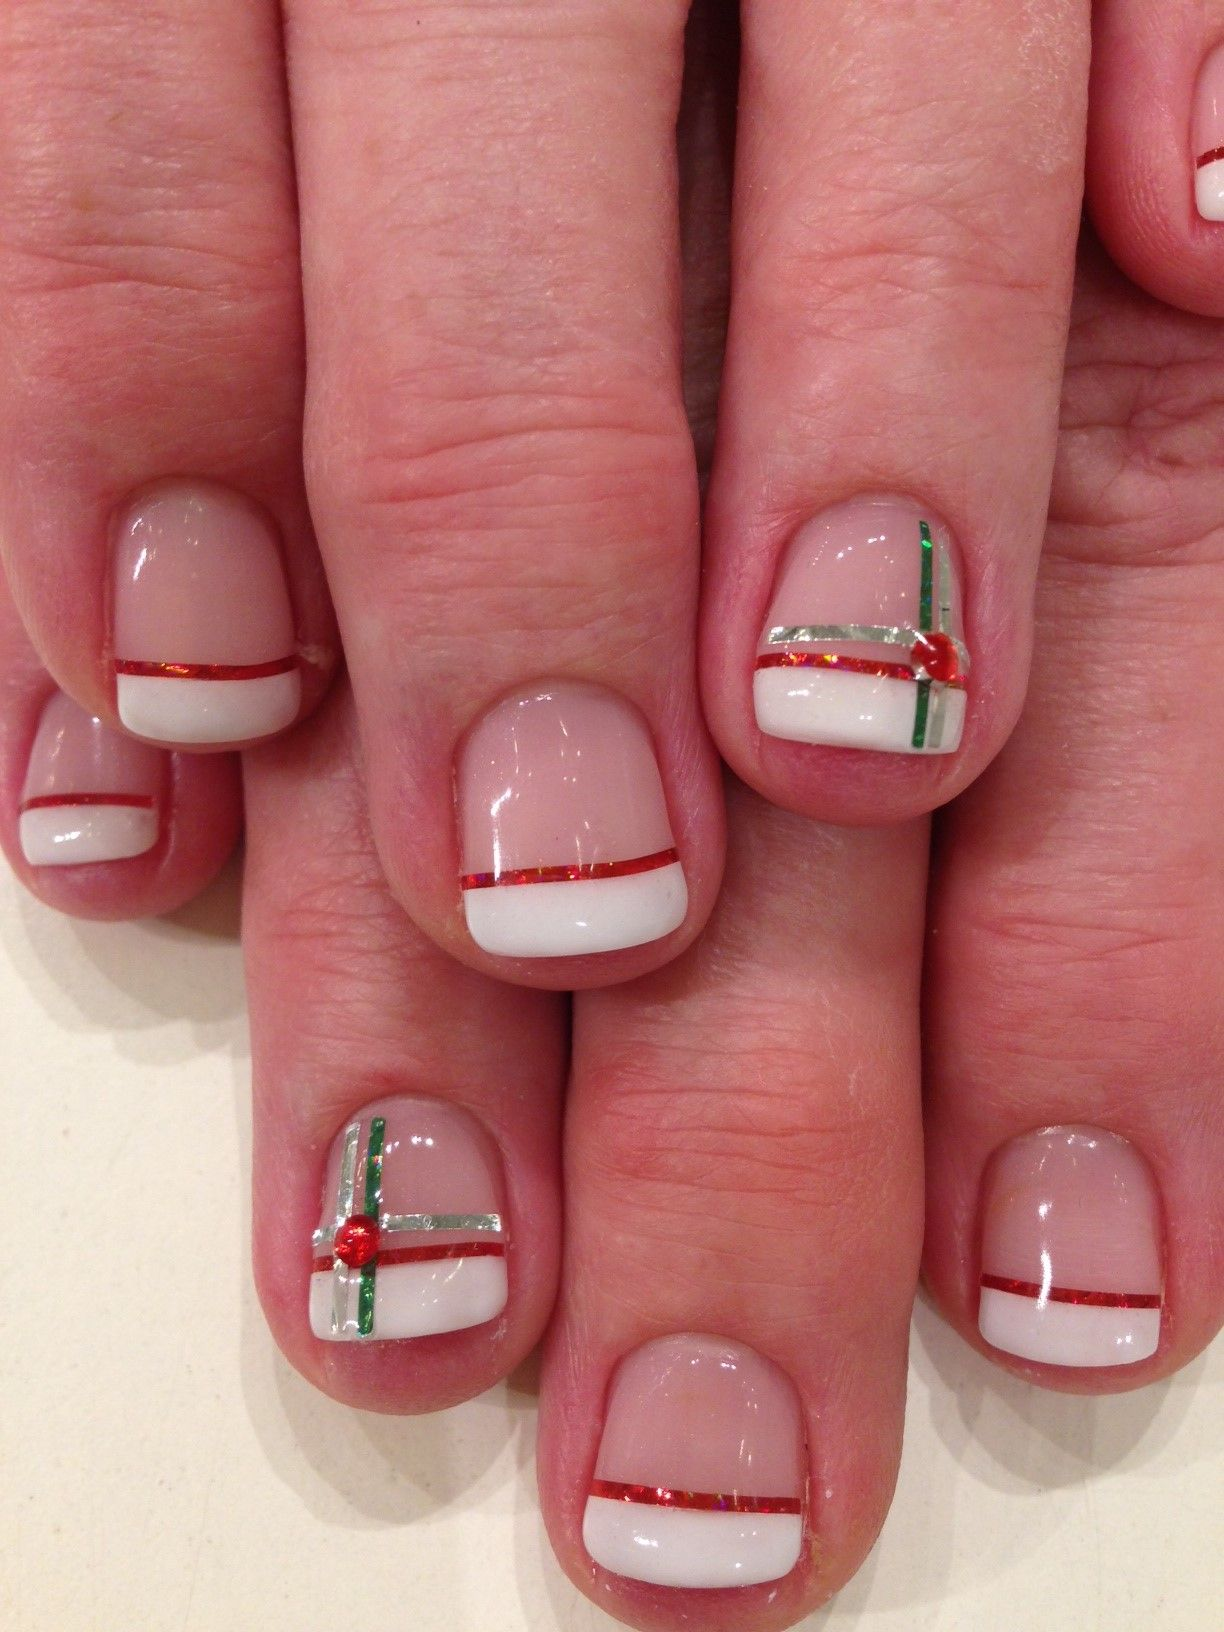 French Manicure In Bio Sculpture Gel With Red Green Silver Striping Tape Accents French Tip Nail Designs Xmas Nails Christmas Gel Nails